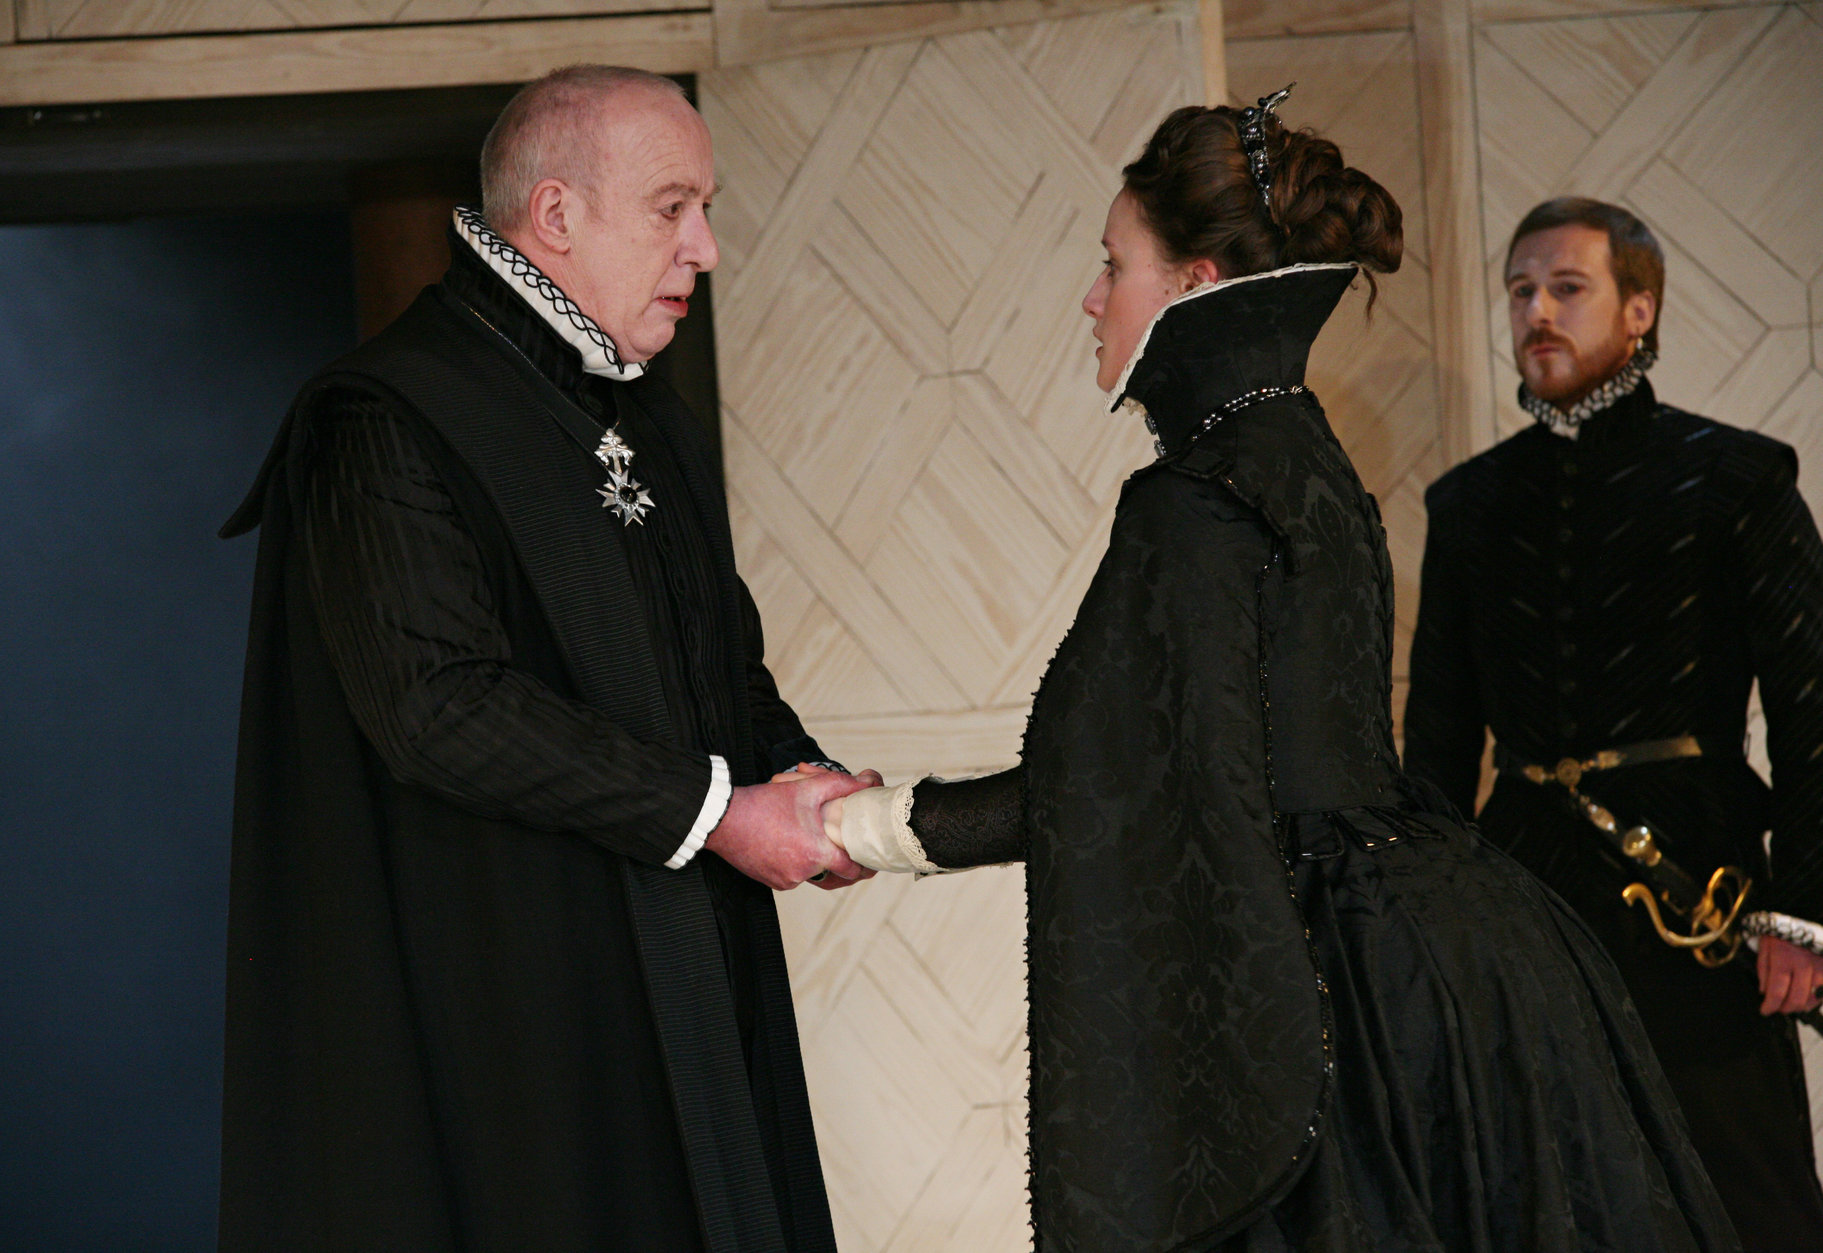 A man holds the hands of a woman in a black gown.